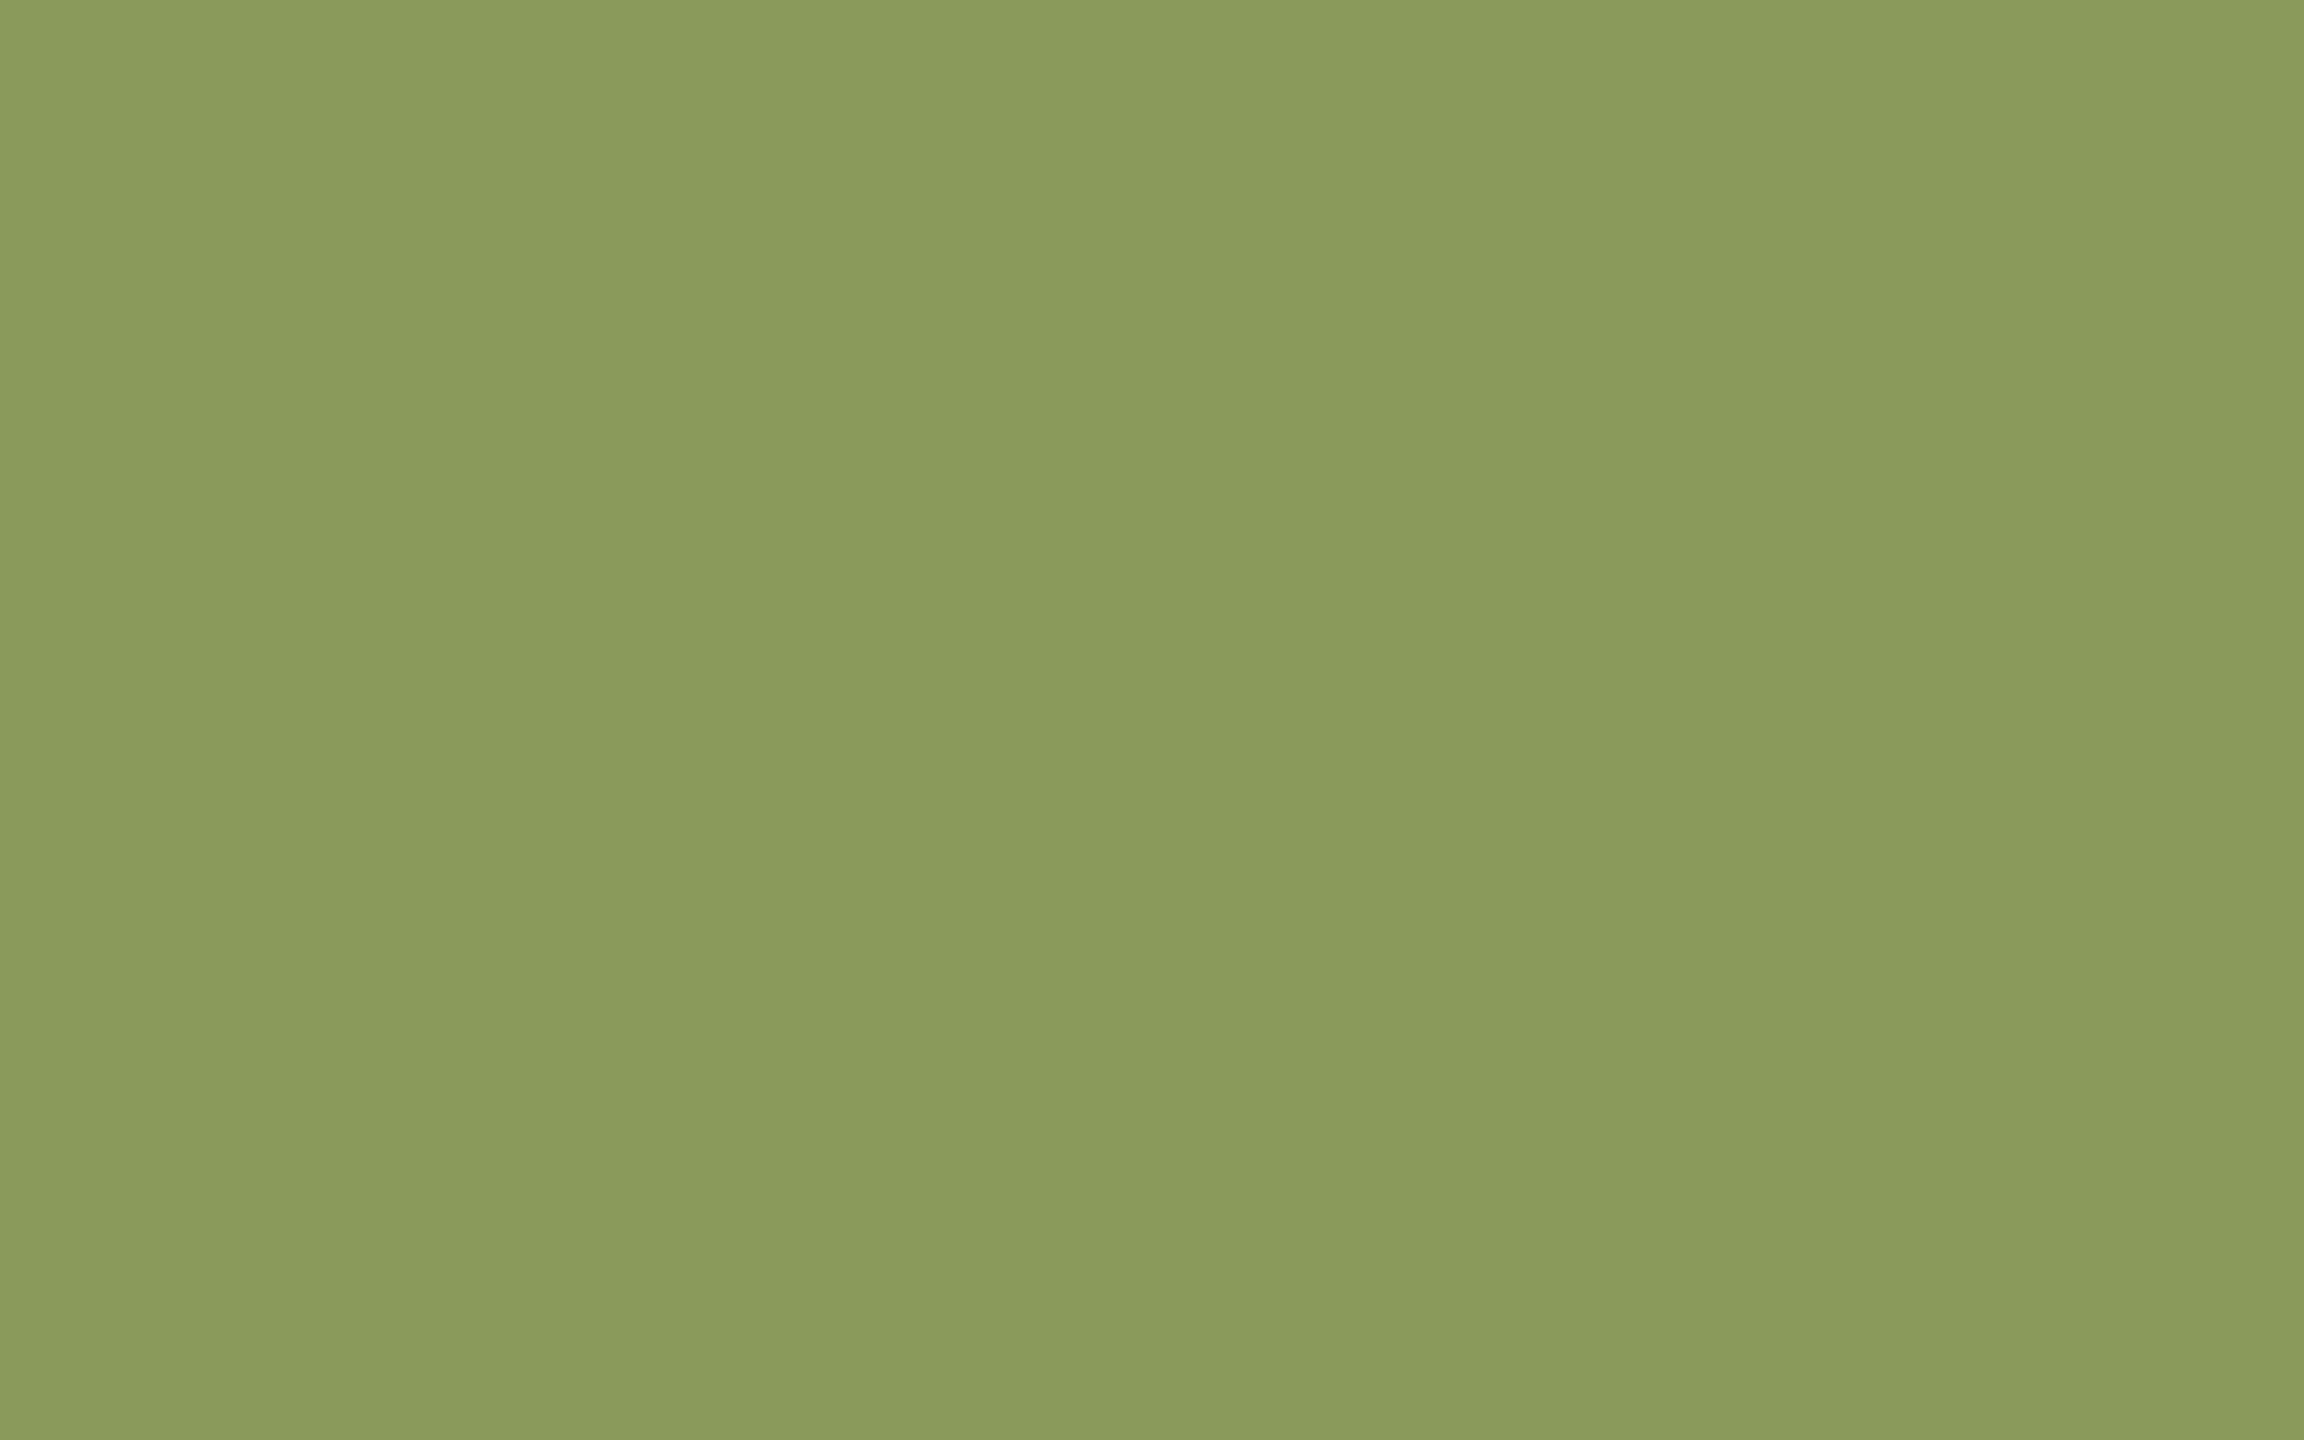 2304x1440 Moss Green Solid Color Background